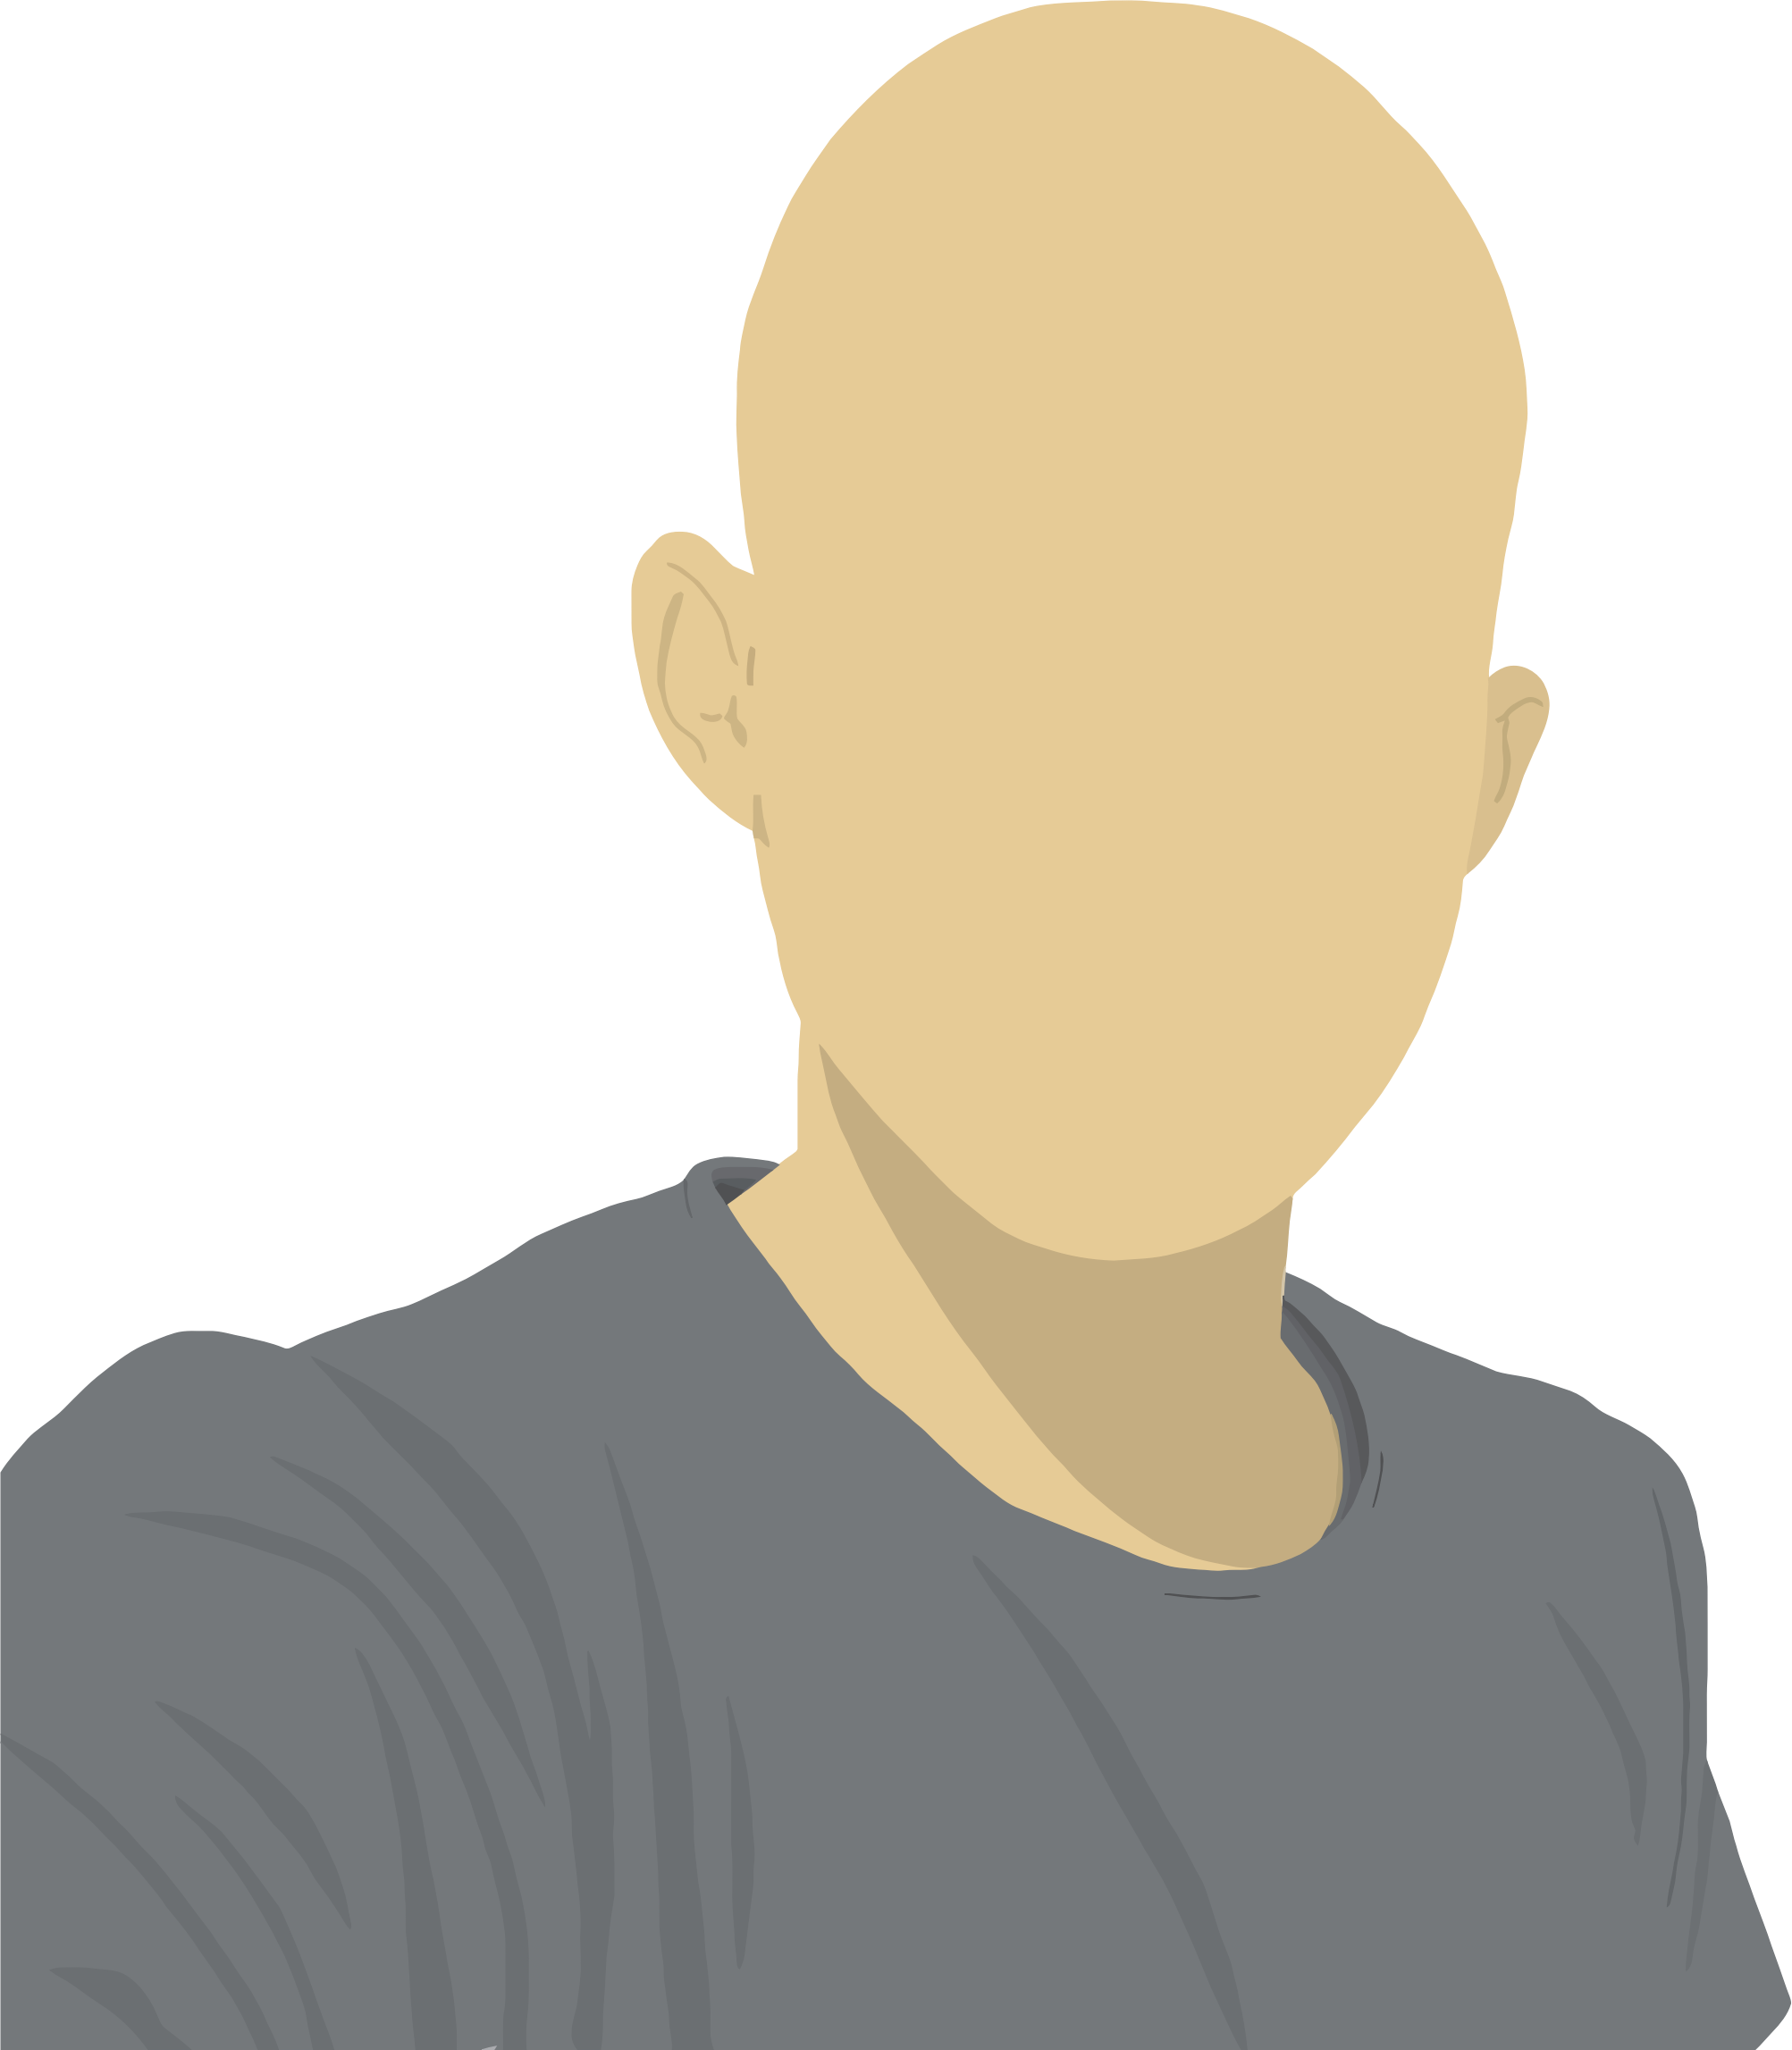 Male clipart 1 person. Faceless avatar big image